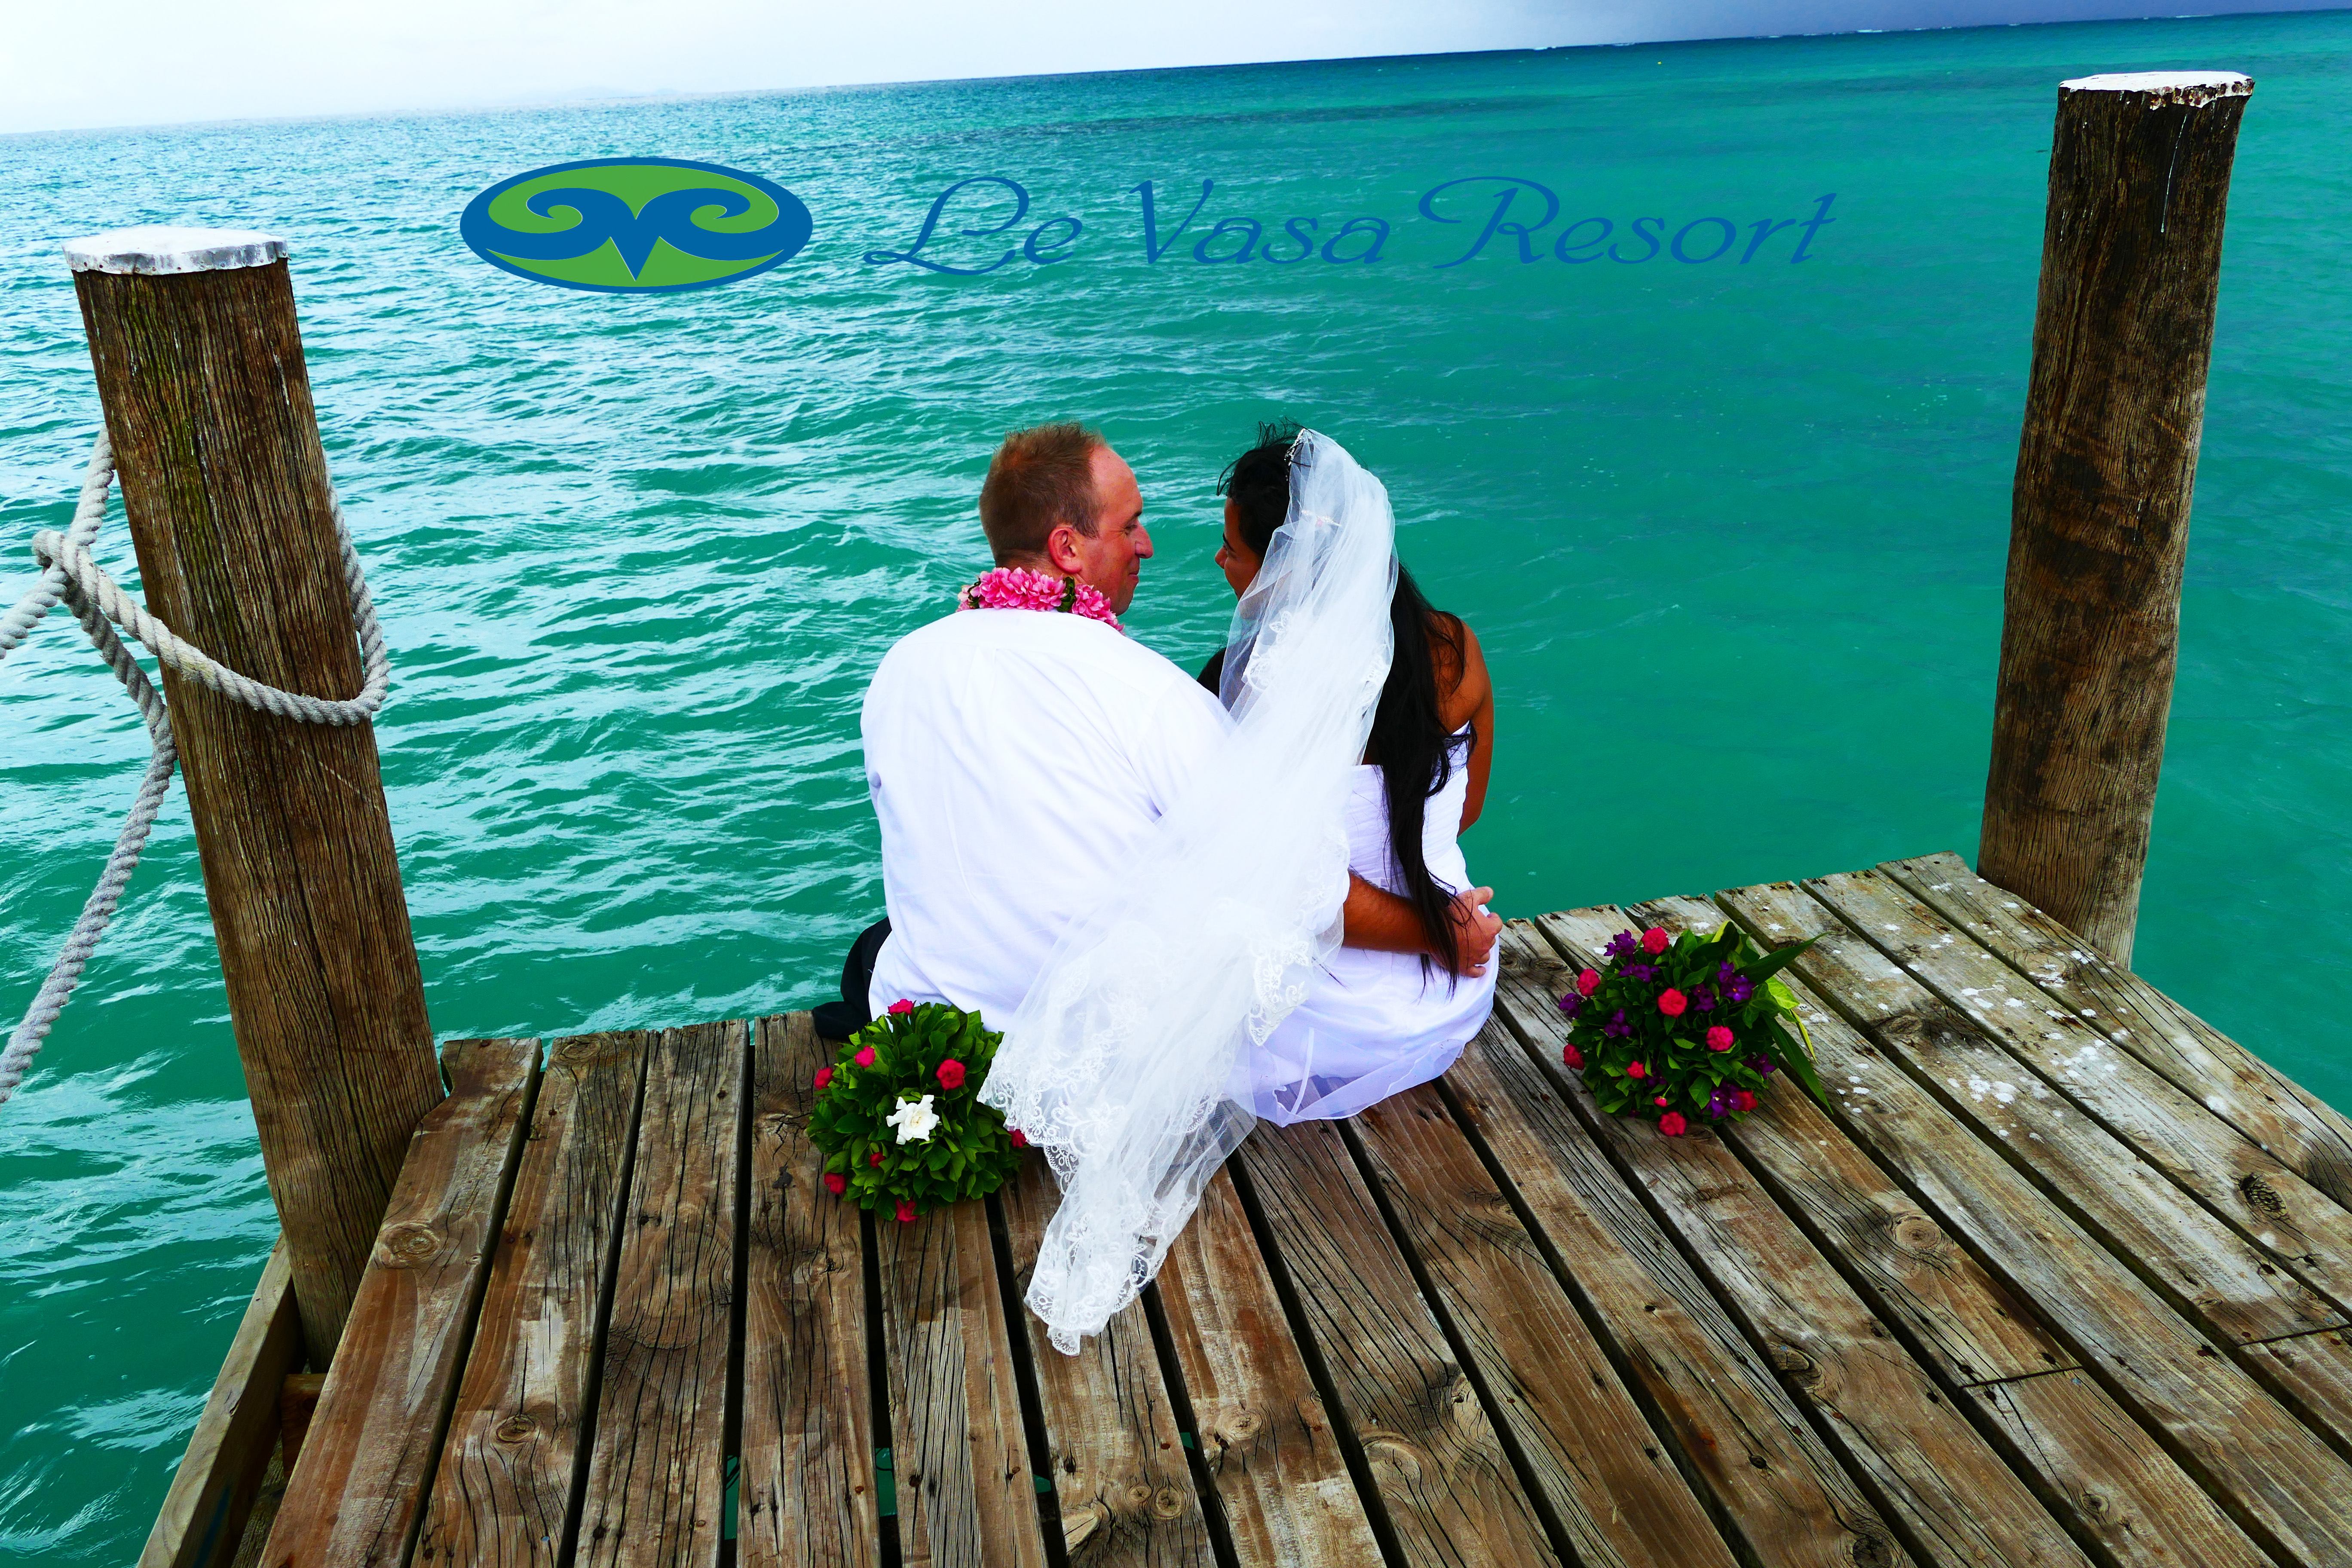 Weddings-Le Vasa Resort-